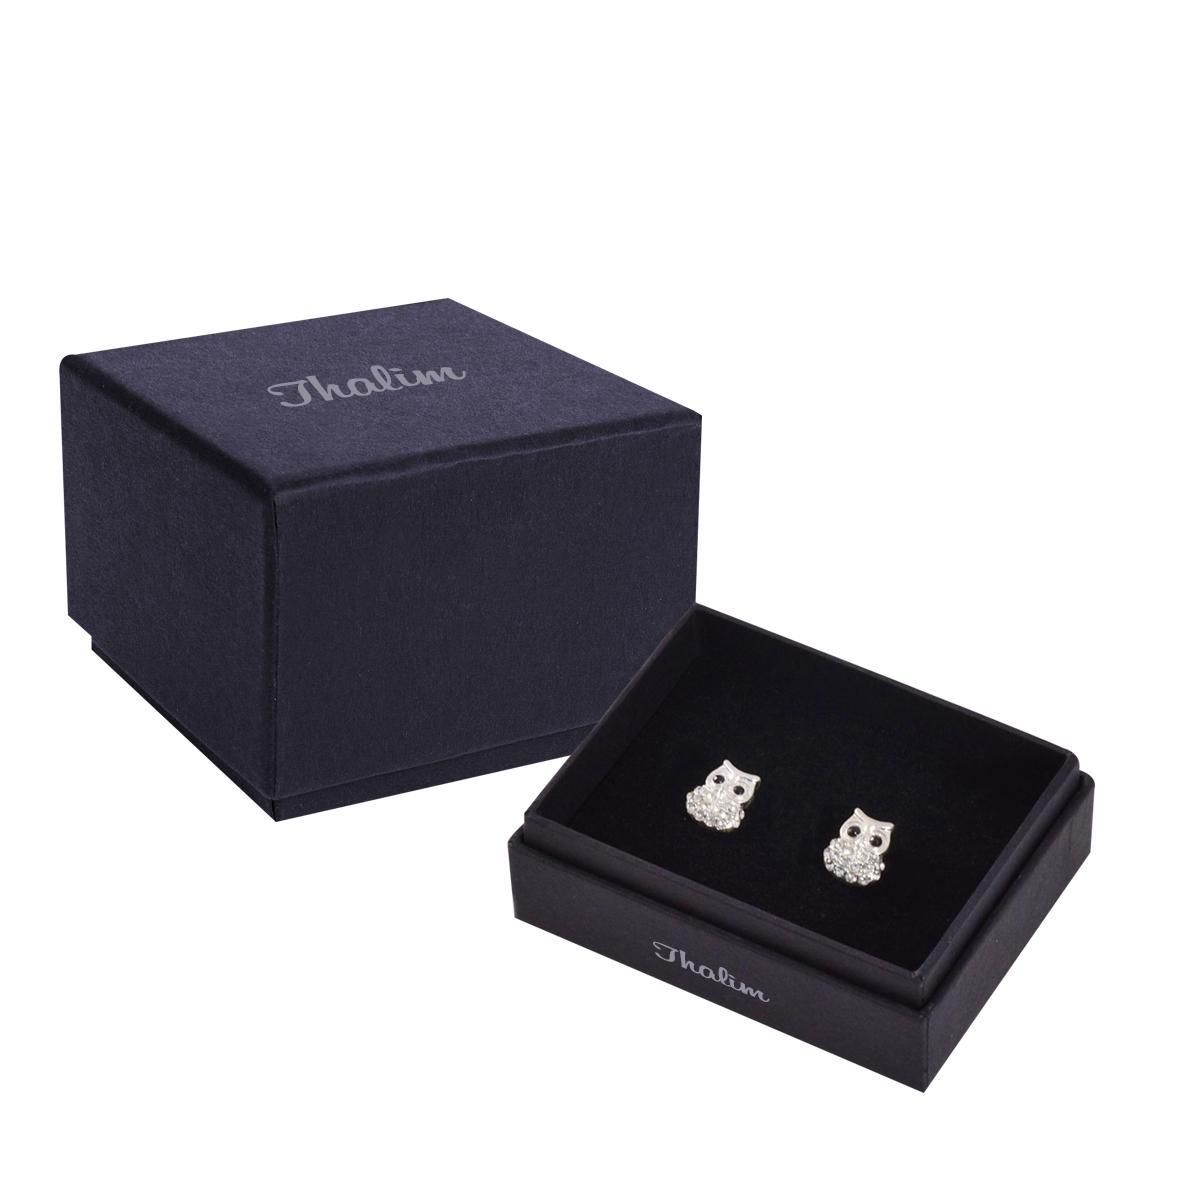 27+ Jewelry gift boxes for sale info